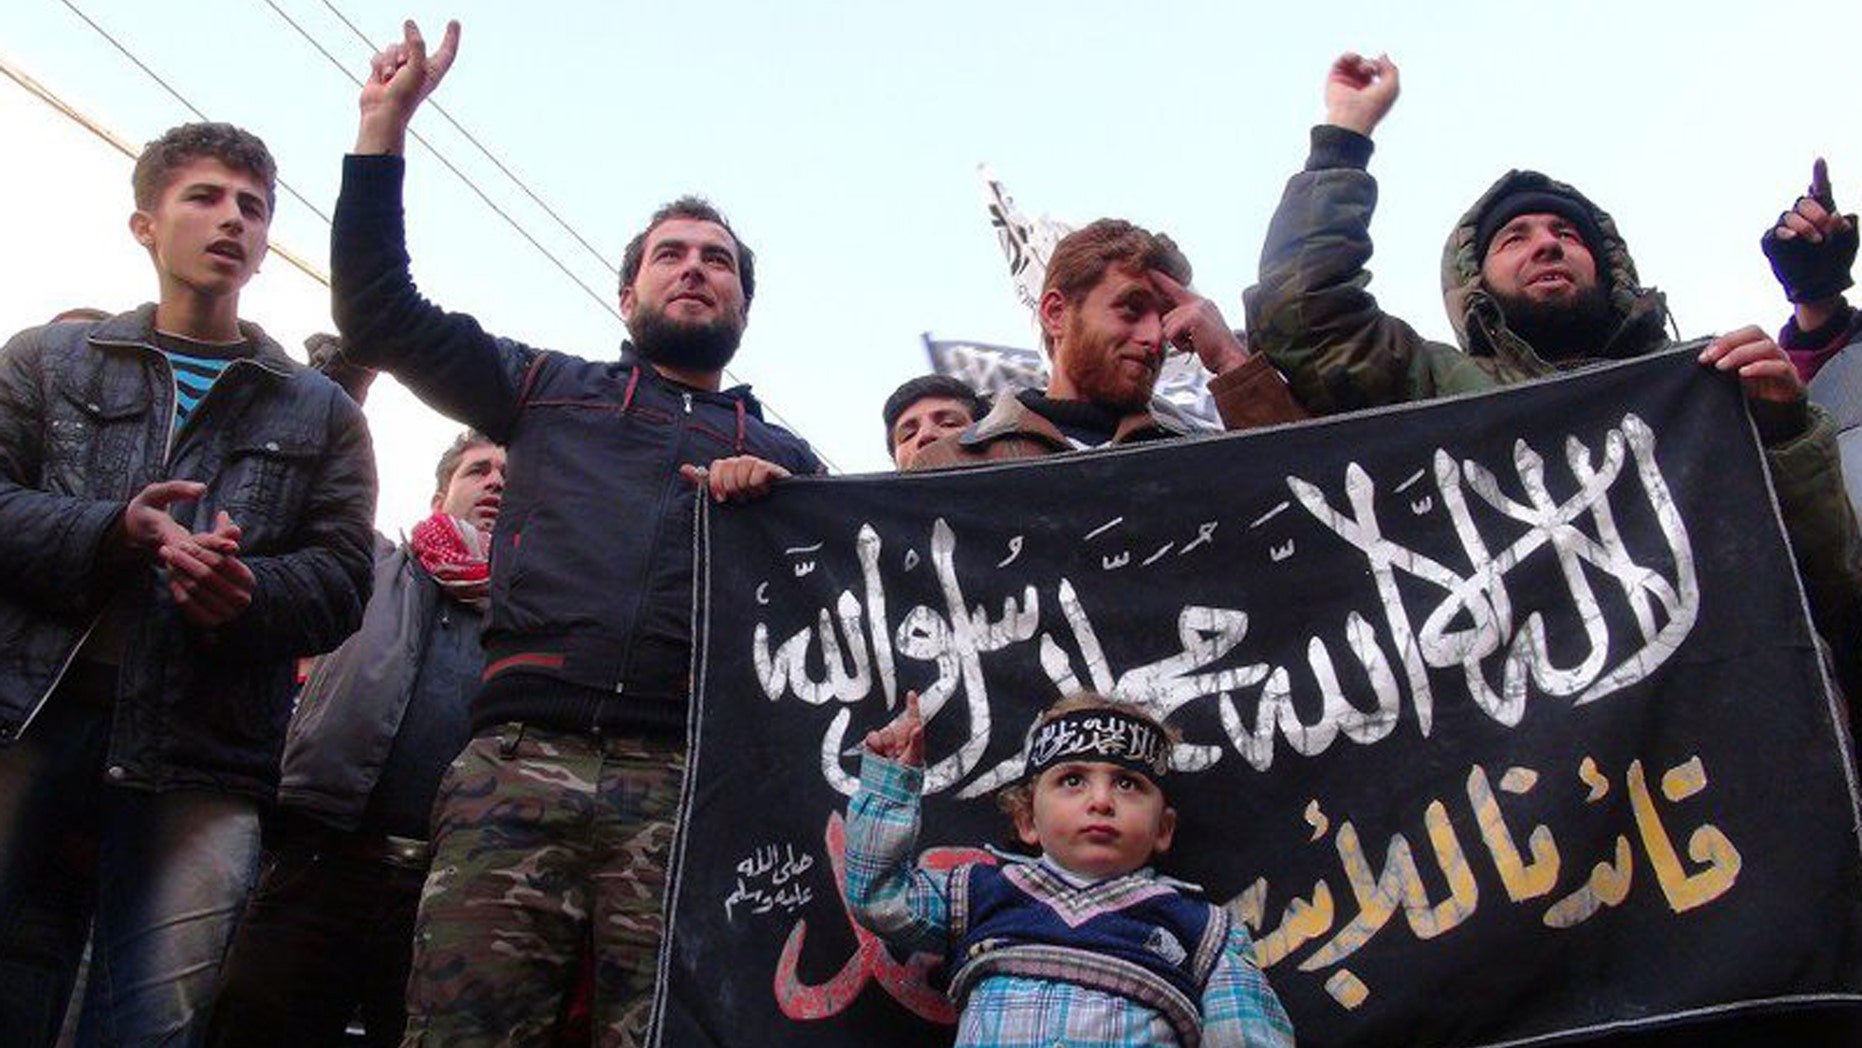 Jan. 25, 2013: This citizen journalism image provided by Edlib News Network, ENN, which has been authenticated based on its contents and other AP reporting, shows Syrians chanting slogans and holding an Islamic banner during a demonstration after Friday prayer, at Binnish village in Idlib province, north Syria.